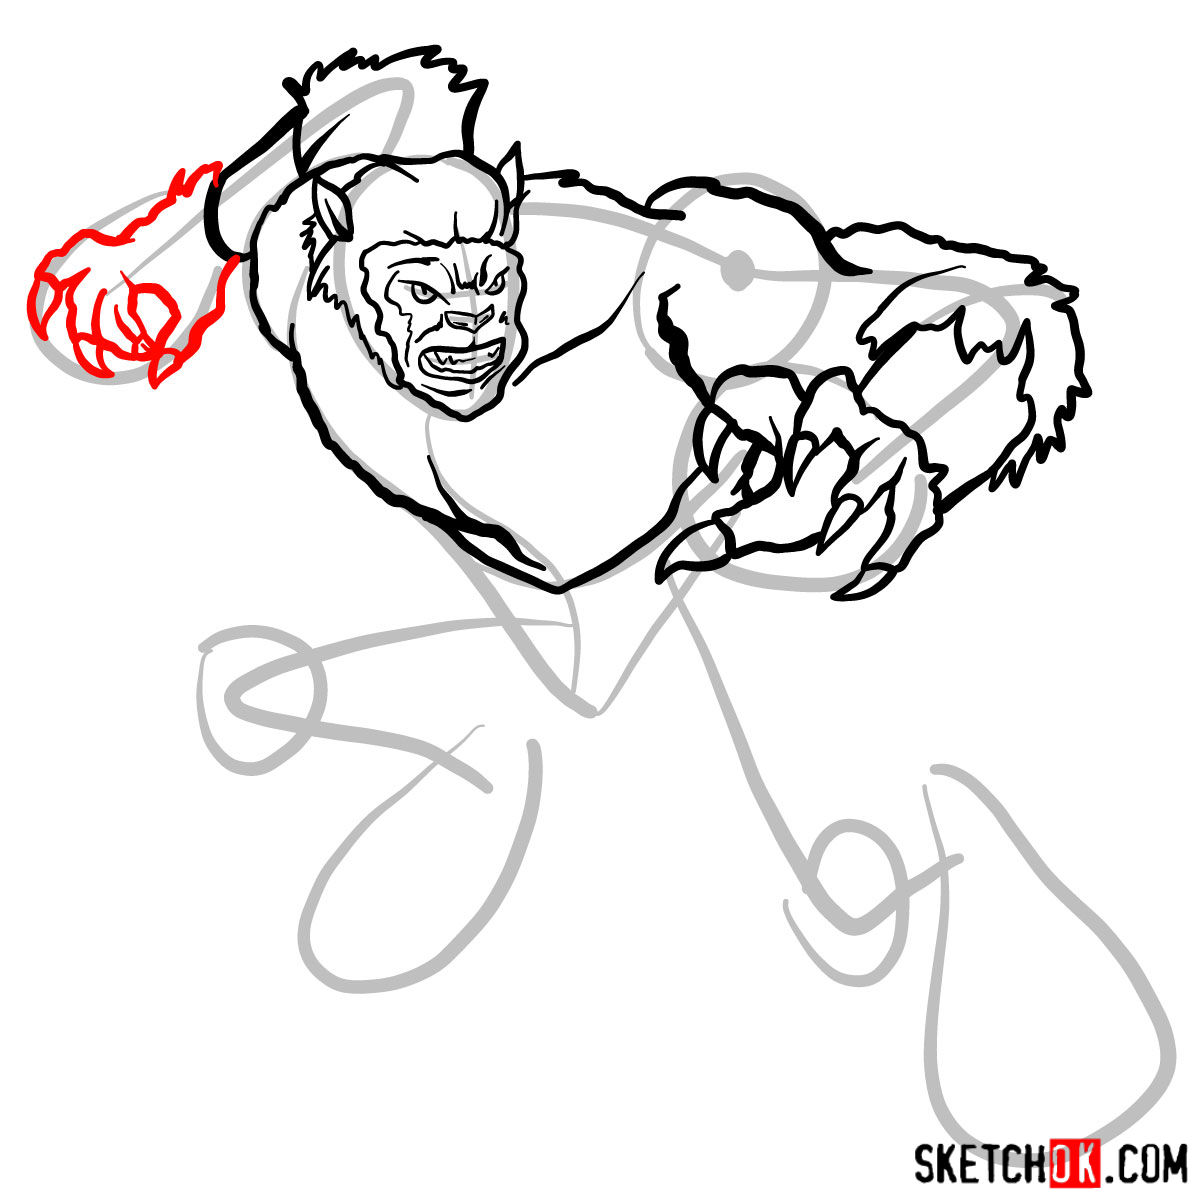 How to draw Beast (X-Men mutant) - step 10